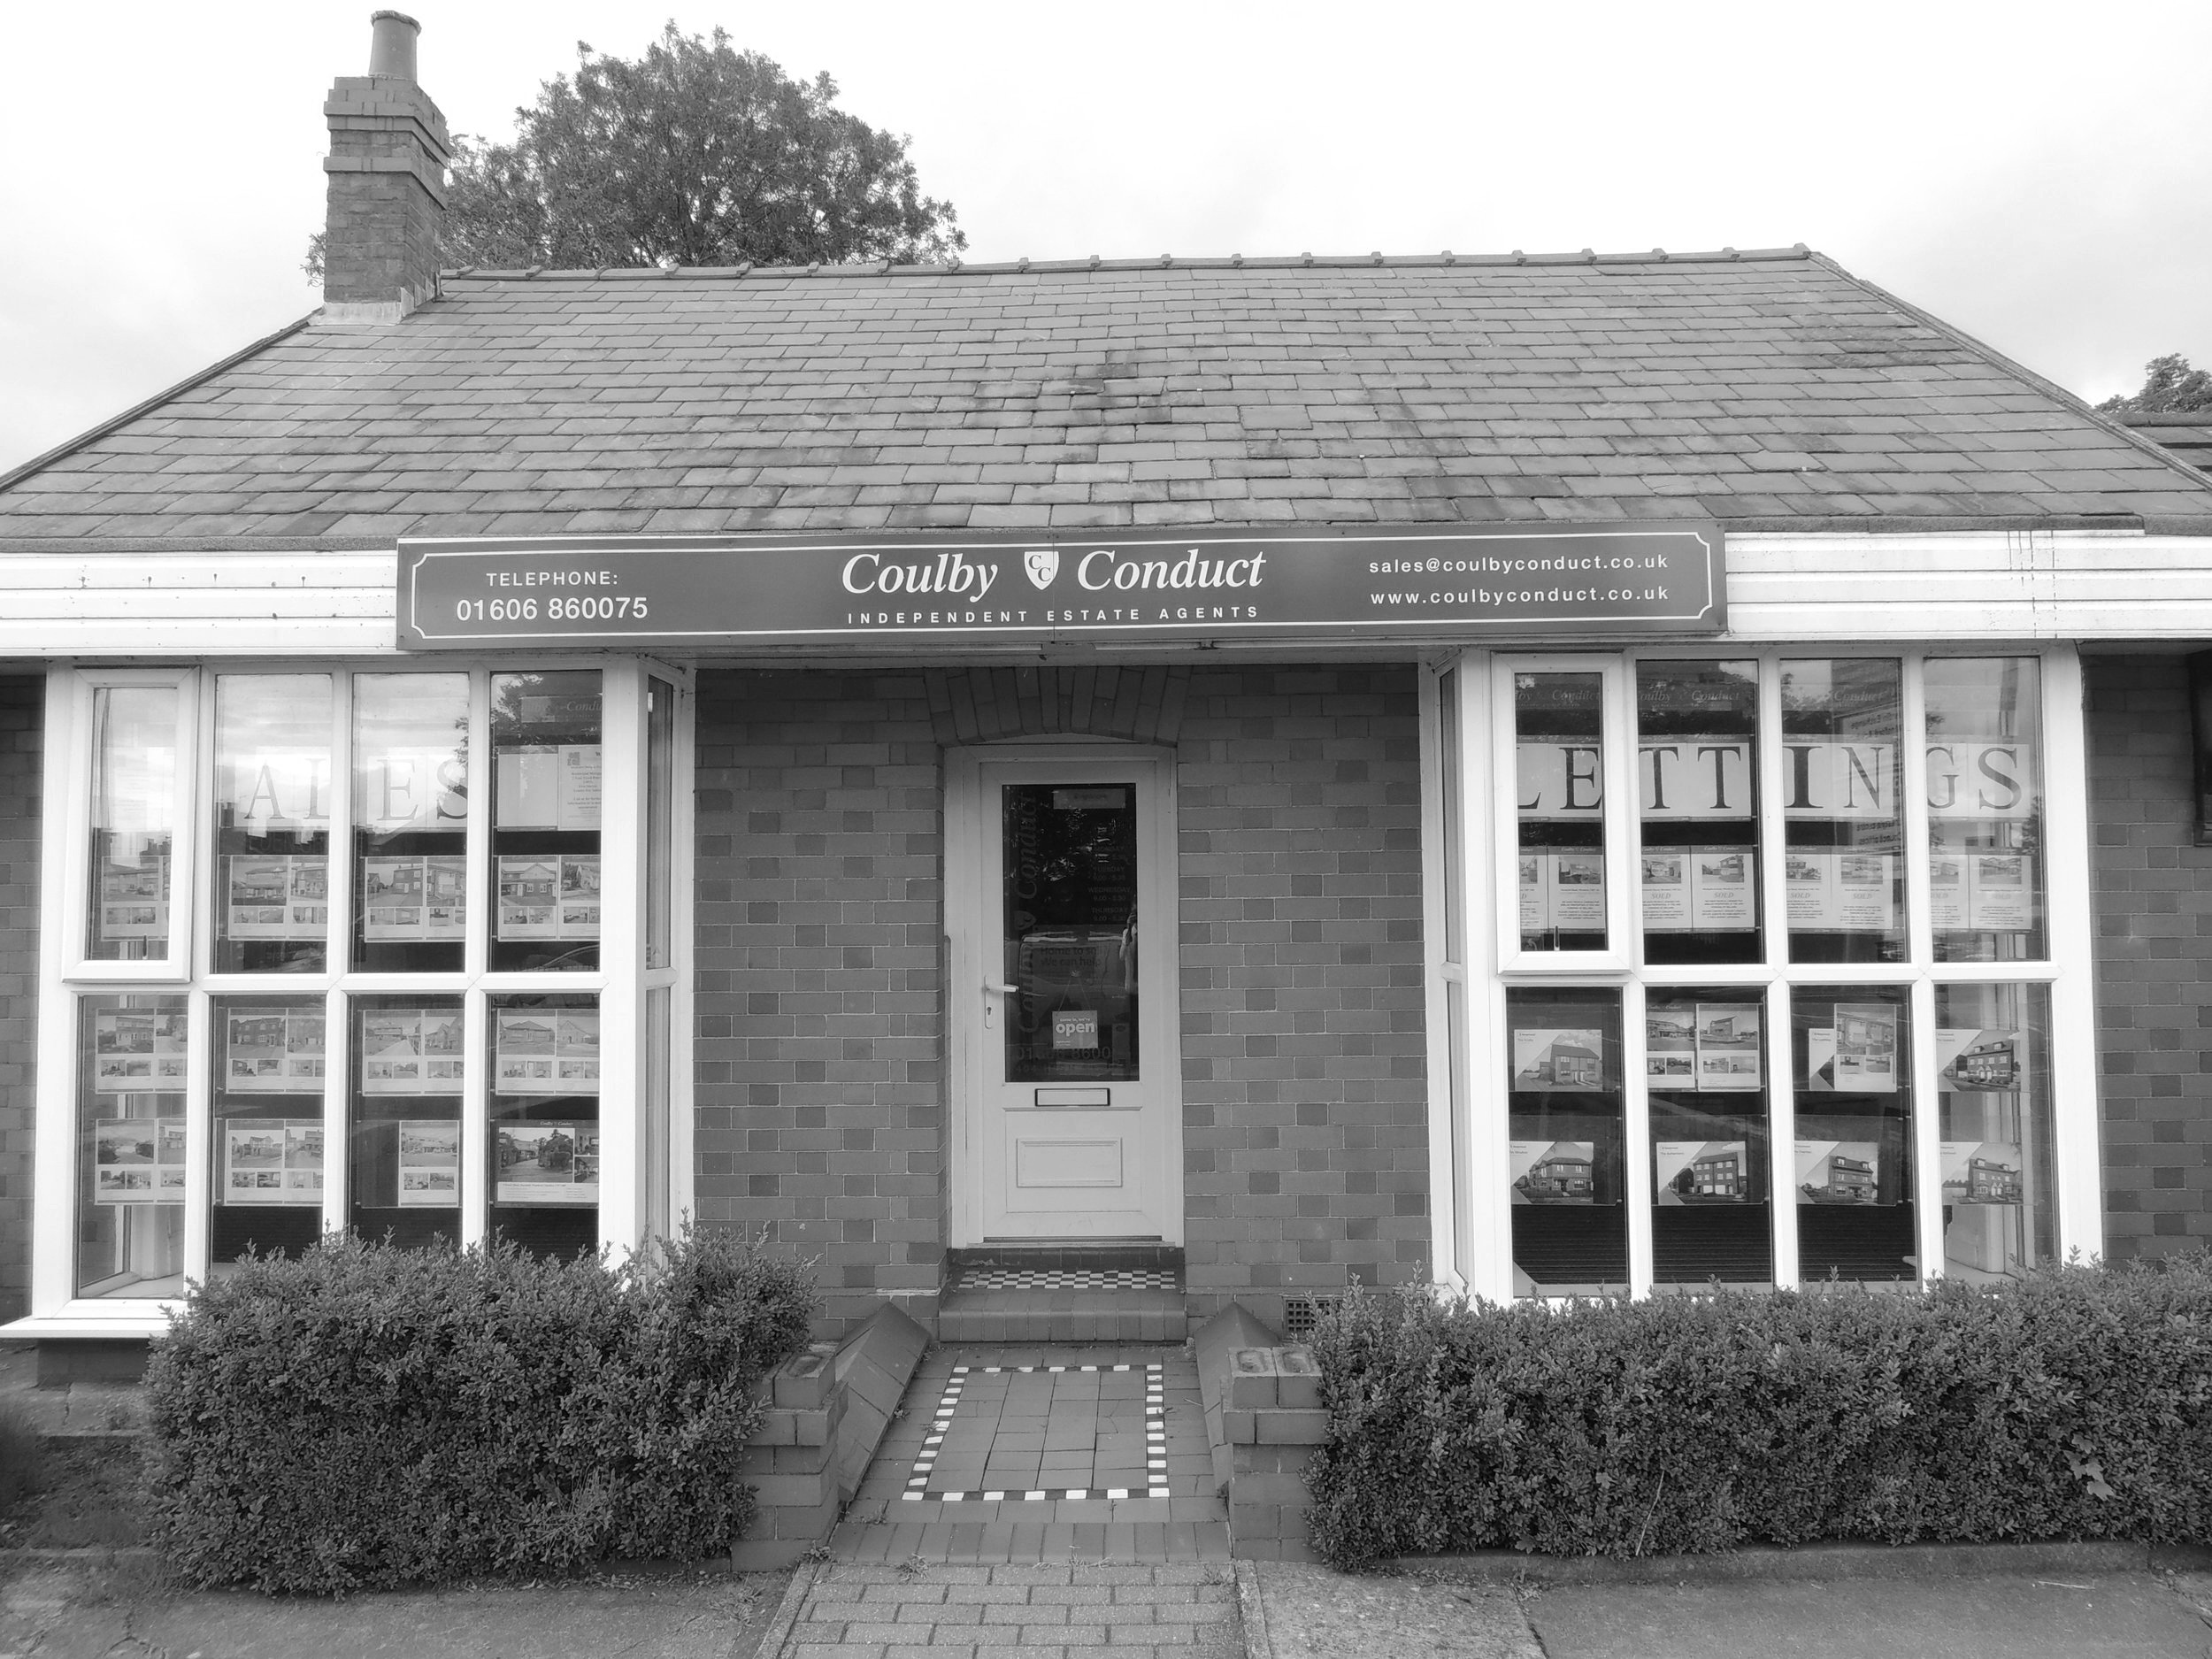 Winsford Office - 404 High StreetWinsfordCheshireCW7 2DPEmail: winsford@coulbyconduct.co.ukPhone: 01606 860075